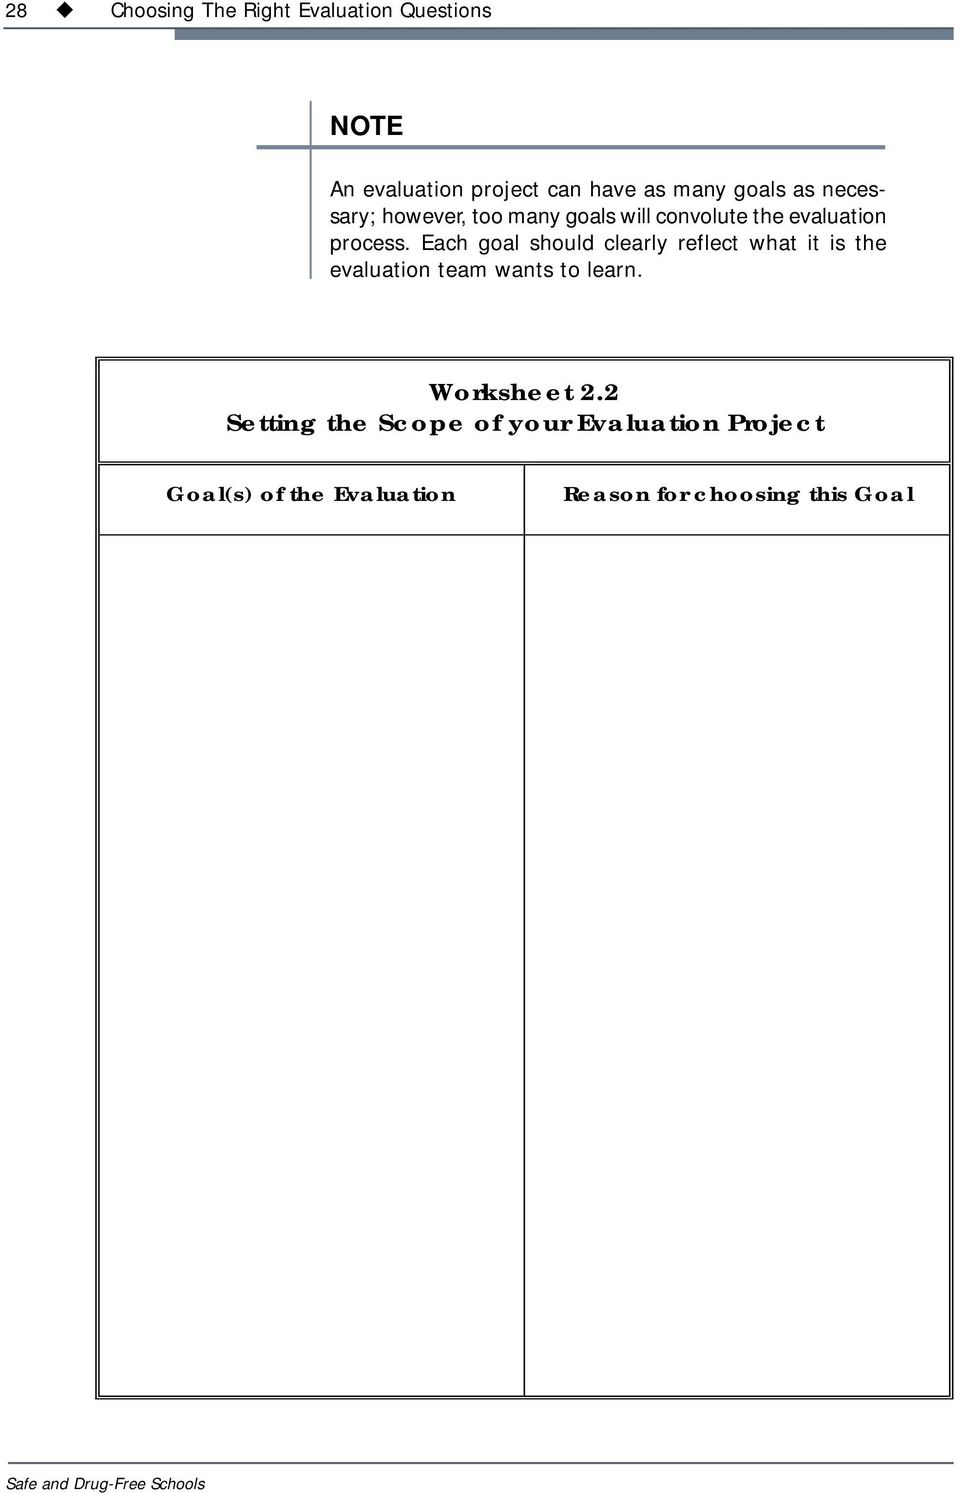 Each goal should clearly reflect what it is the evaluation team wants to learn. Worksheet 2.